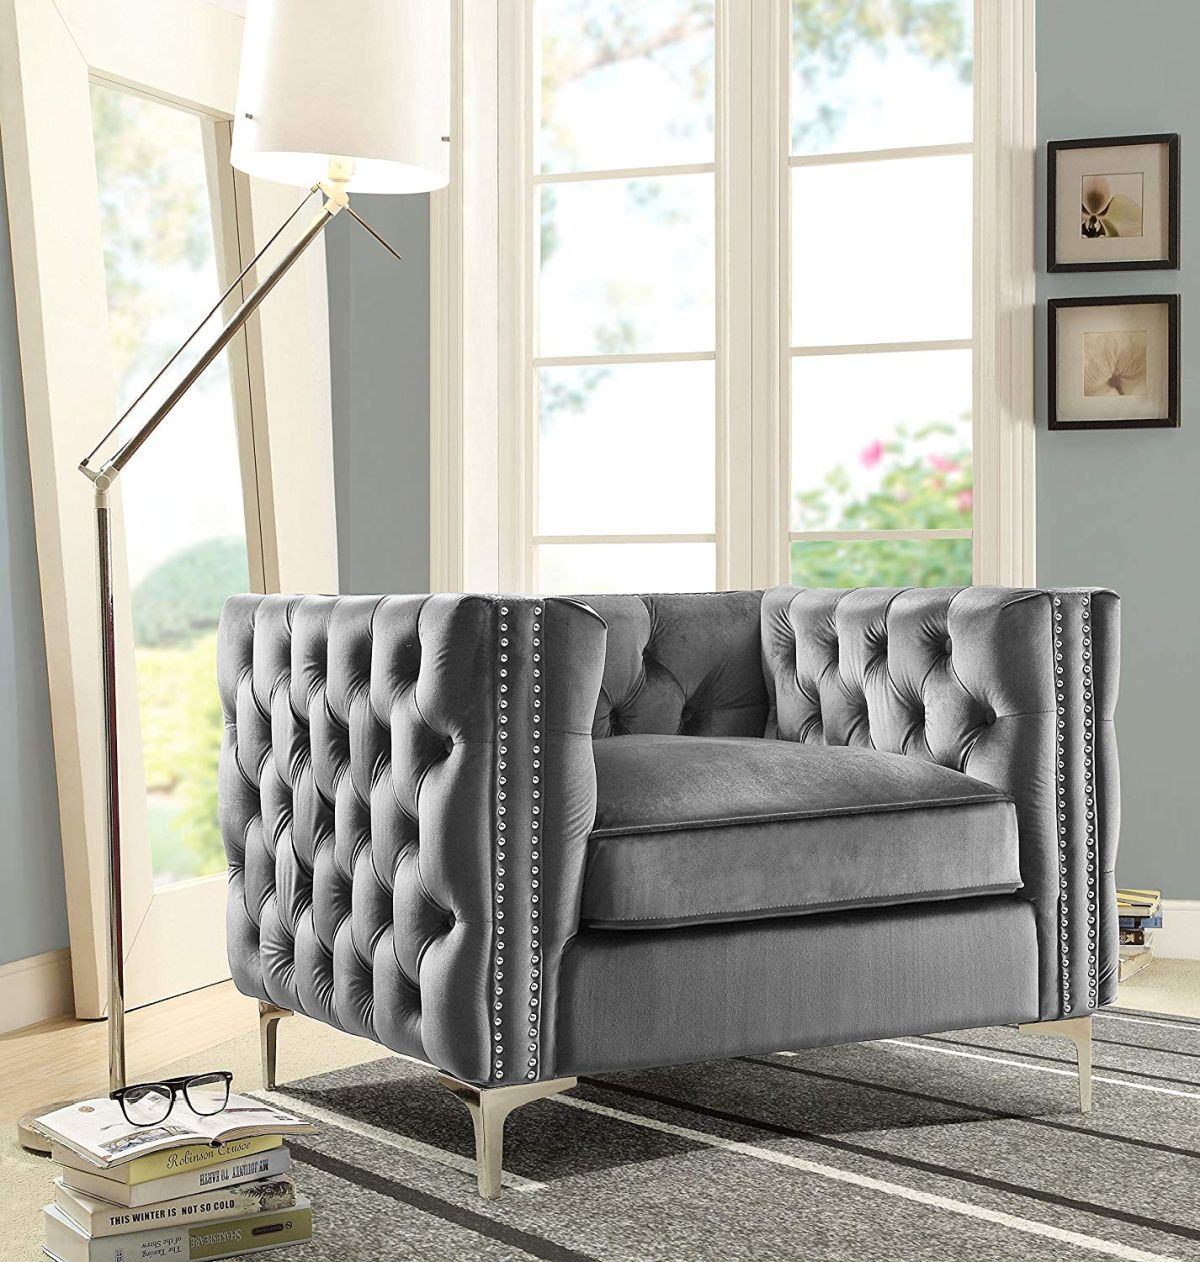 1568726764 533 oversized armchair designs reveal the best seat in the house - Oversized Armchair Designs Reveal The Best Seat In The House